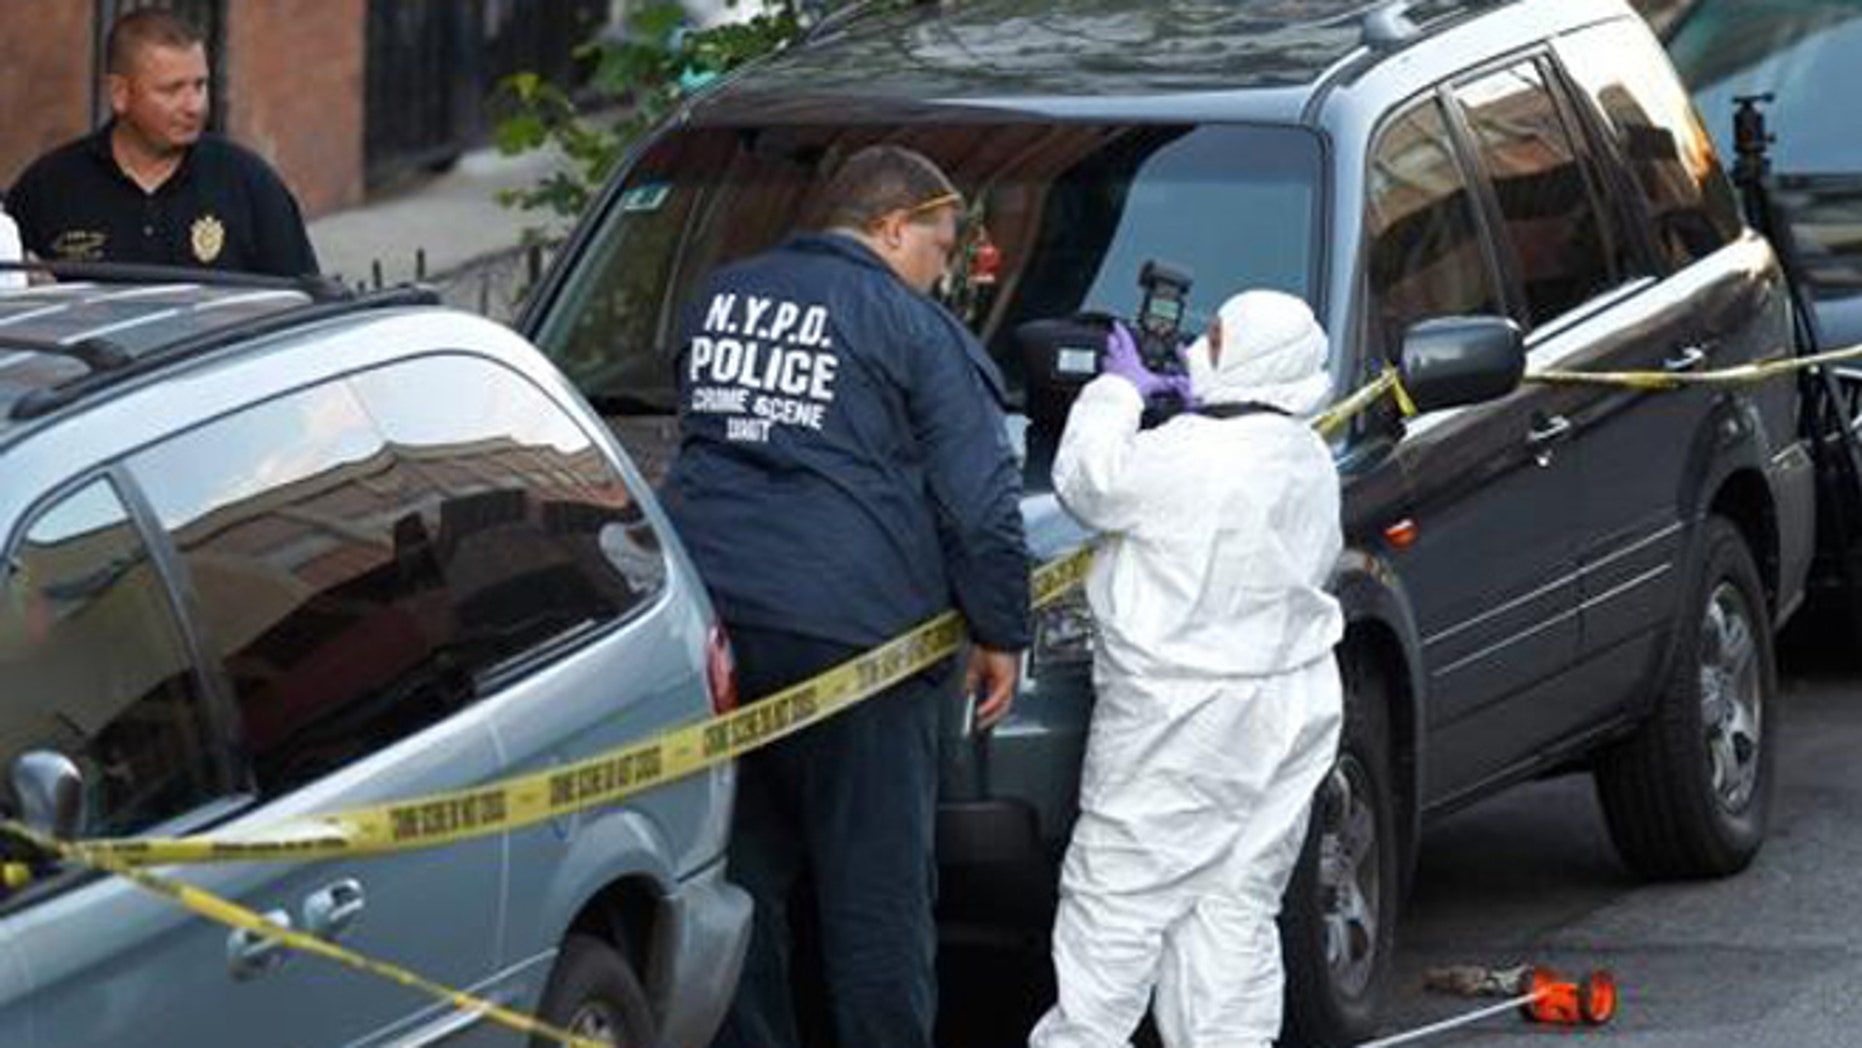 Police investigate the scene of the shooting.